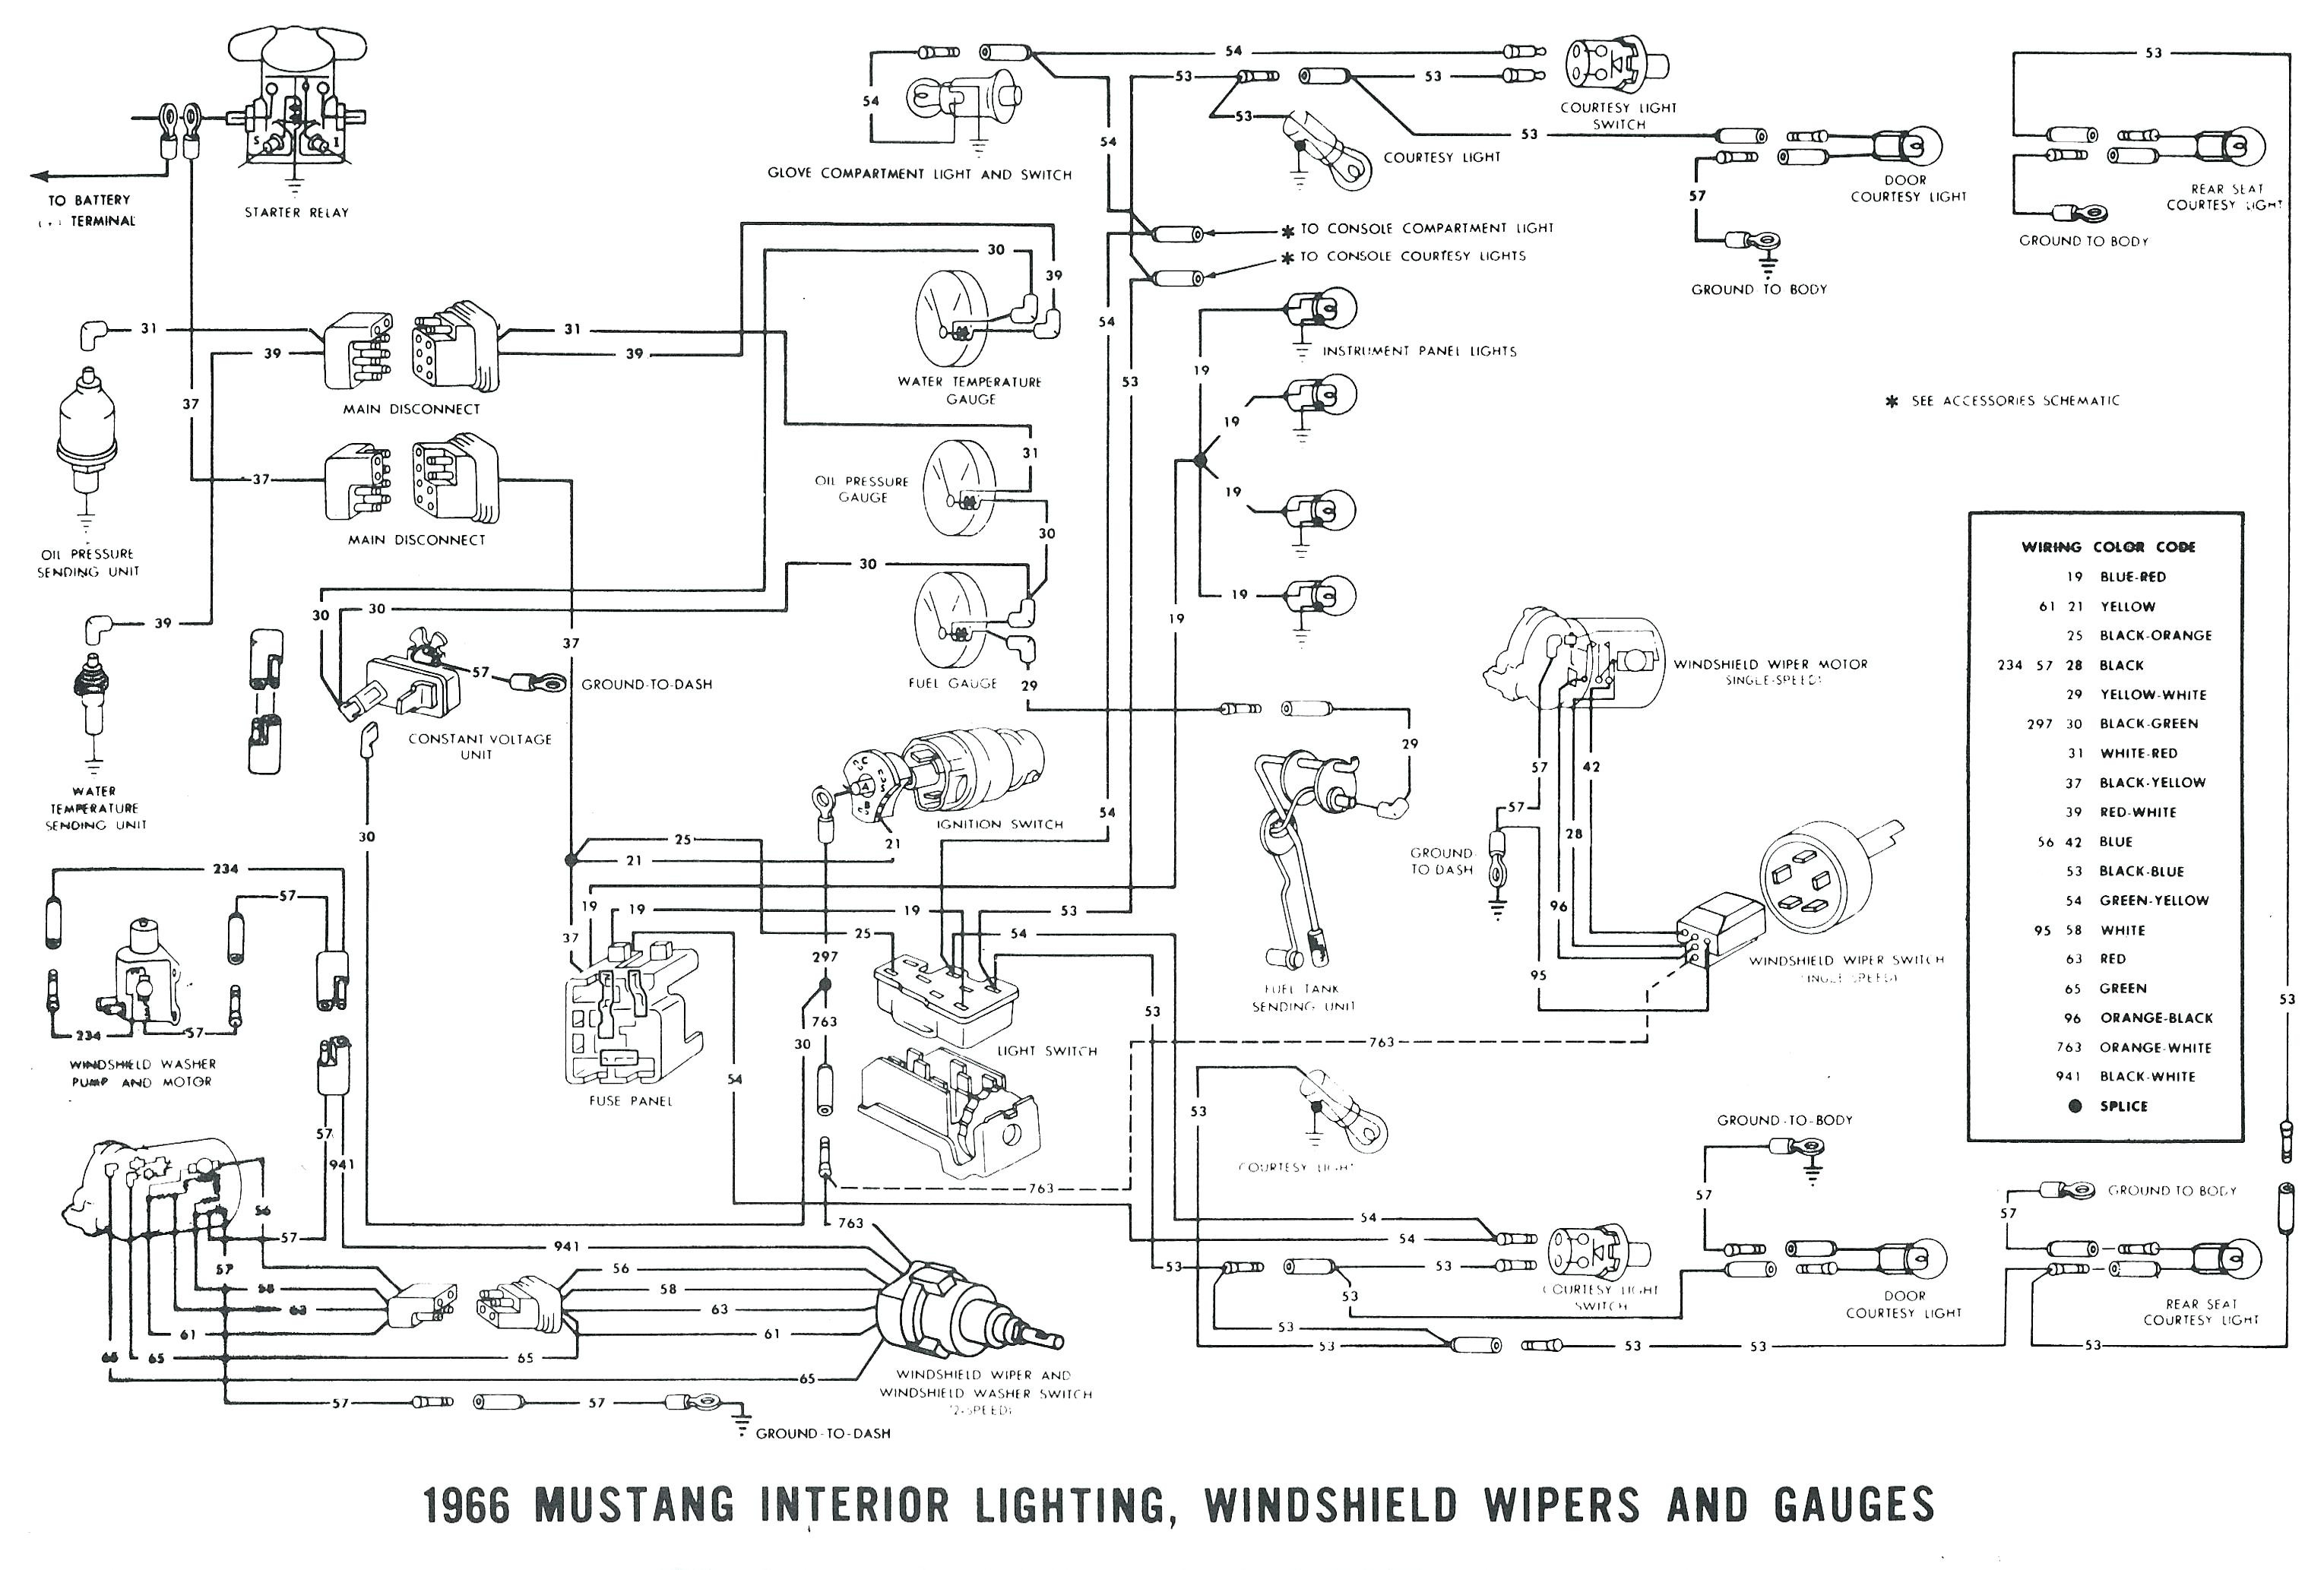 1968 Mustang Wiring Diagram 1990 ford Mustang Alternator Wiring Diagram Engine Diagrams 90 Radio Of 1968 Mustang Wiring Diagram